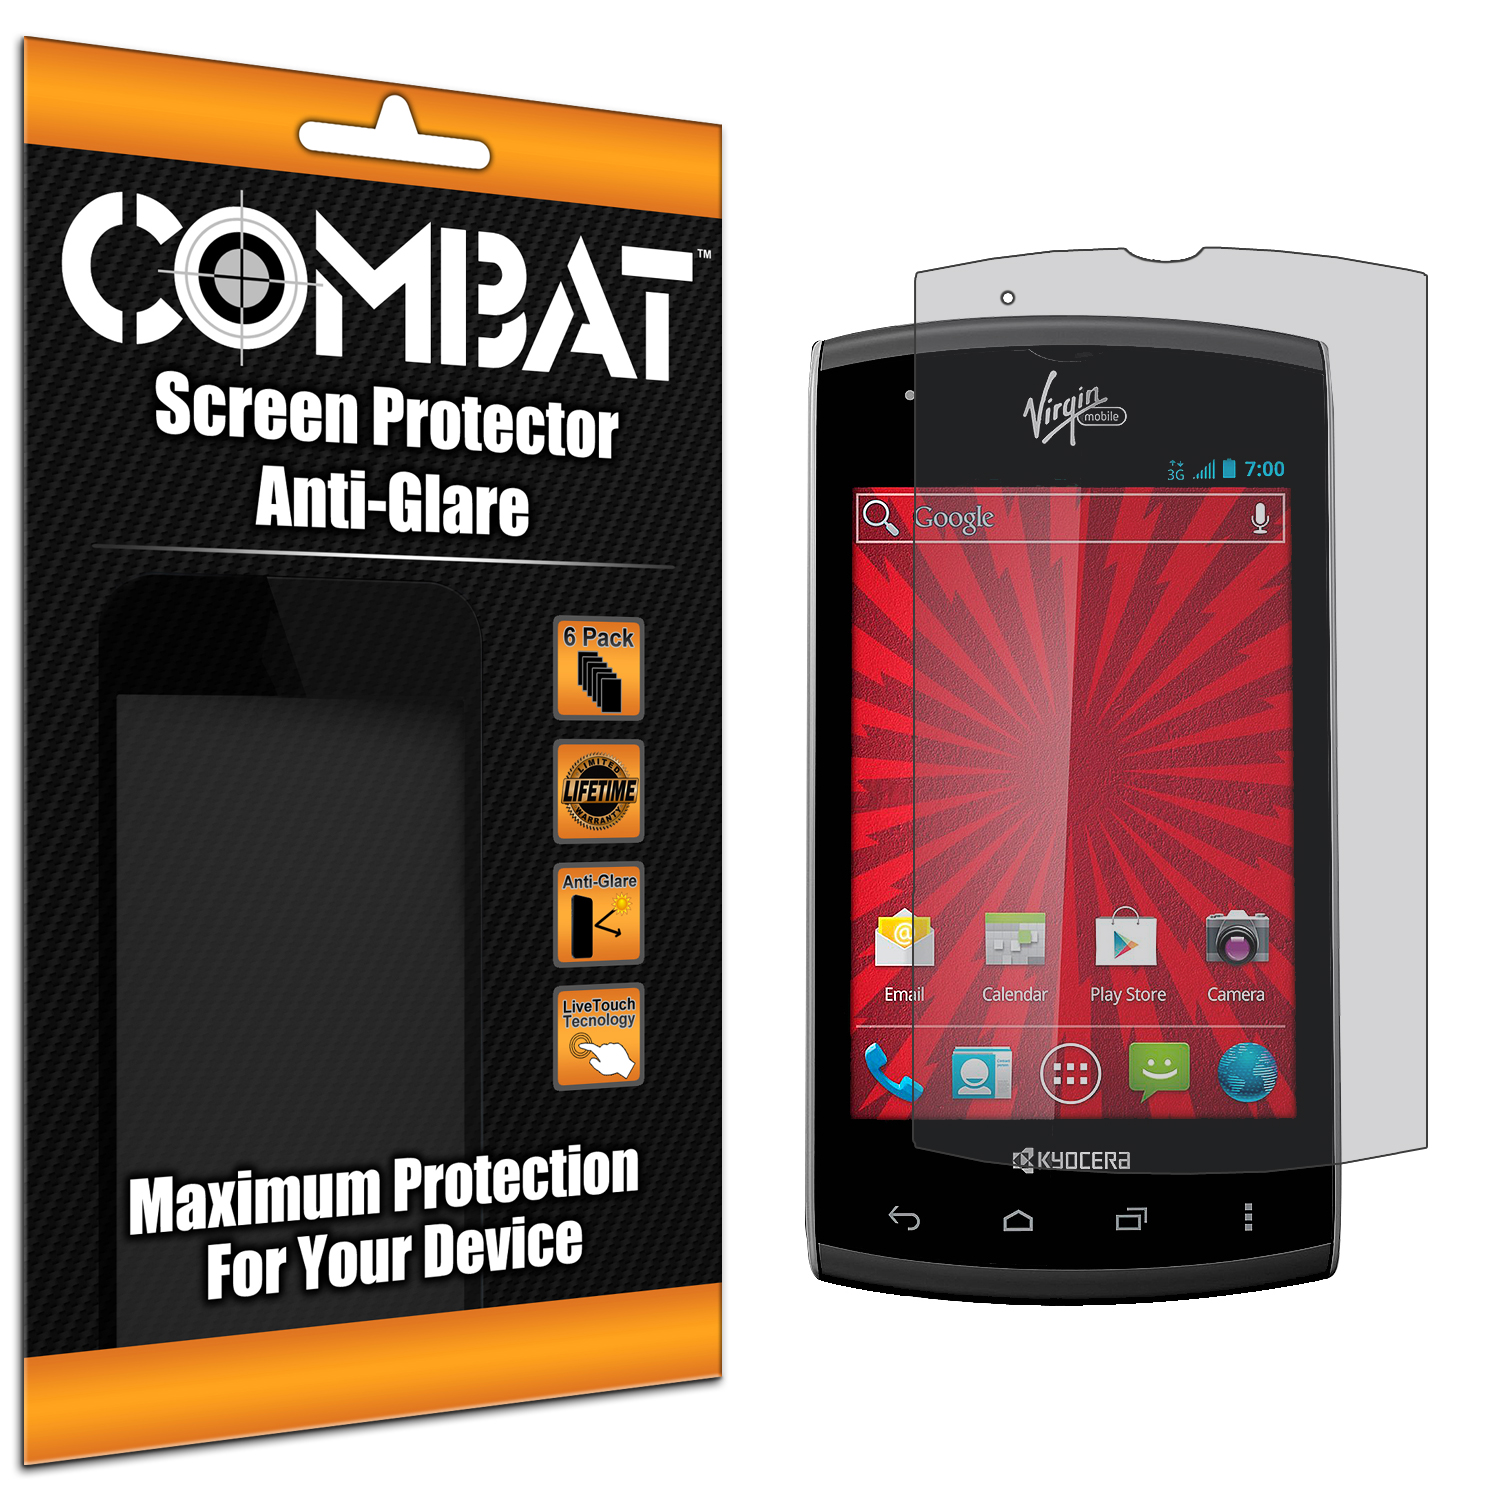 Kyocera Rise Combat 6 Pack Anti-Glare Matte Screen Protector